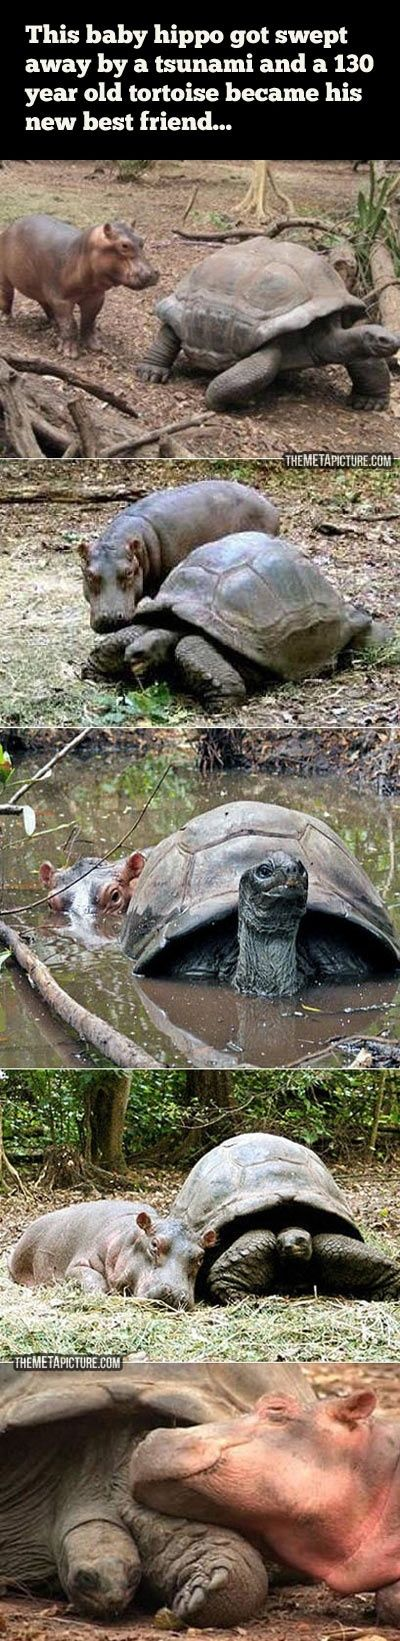 Baby hippo and tortoise become best friends